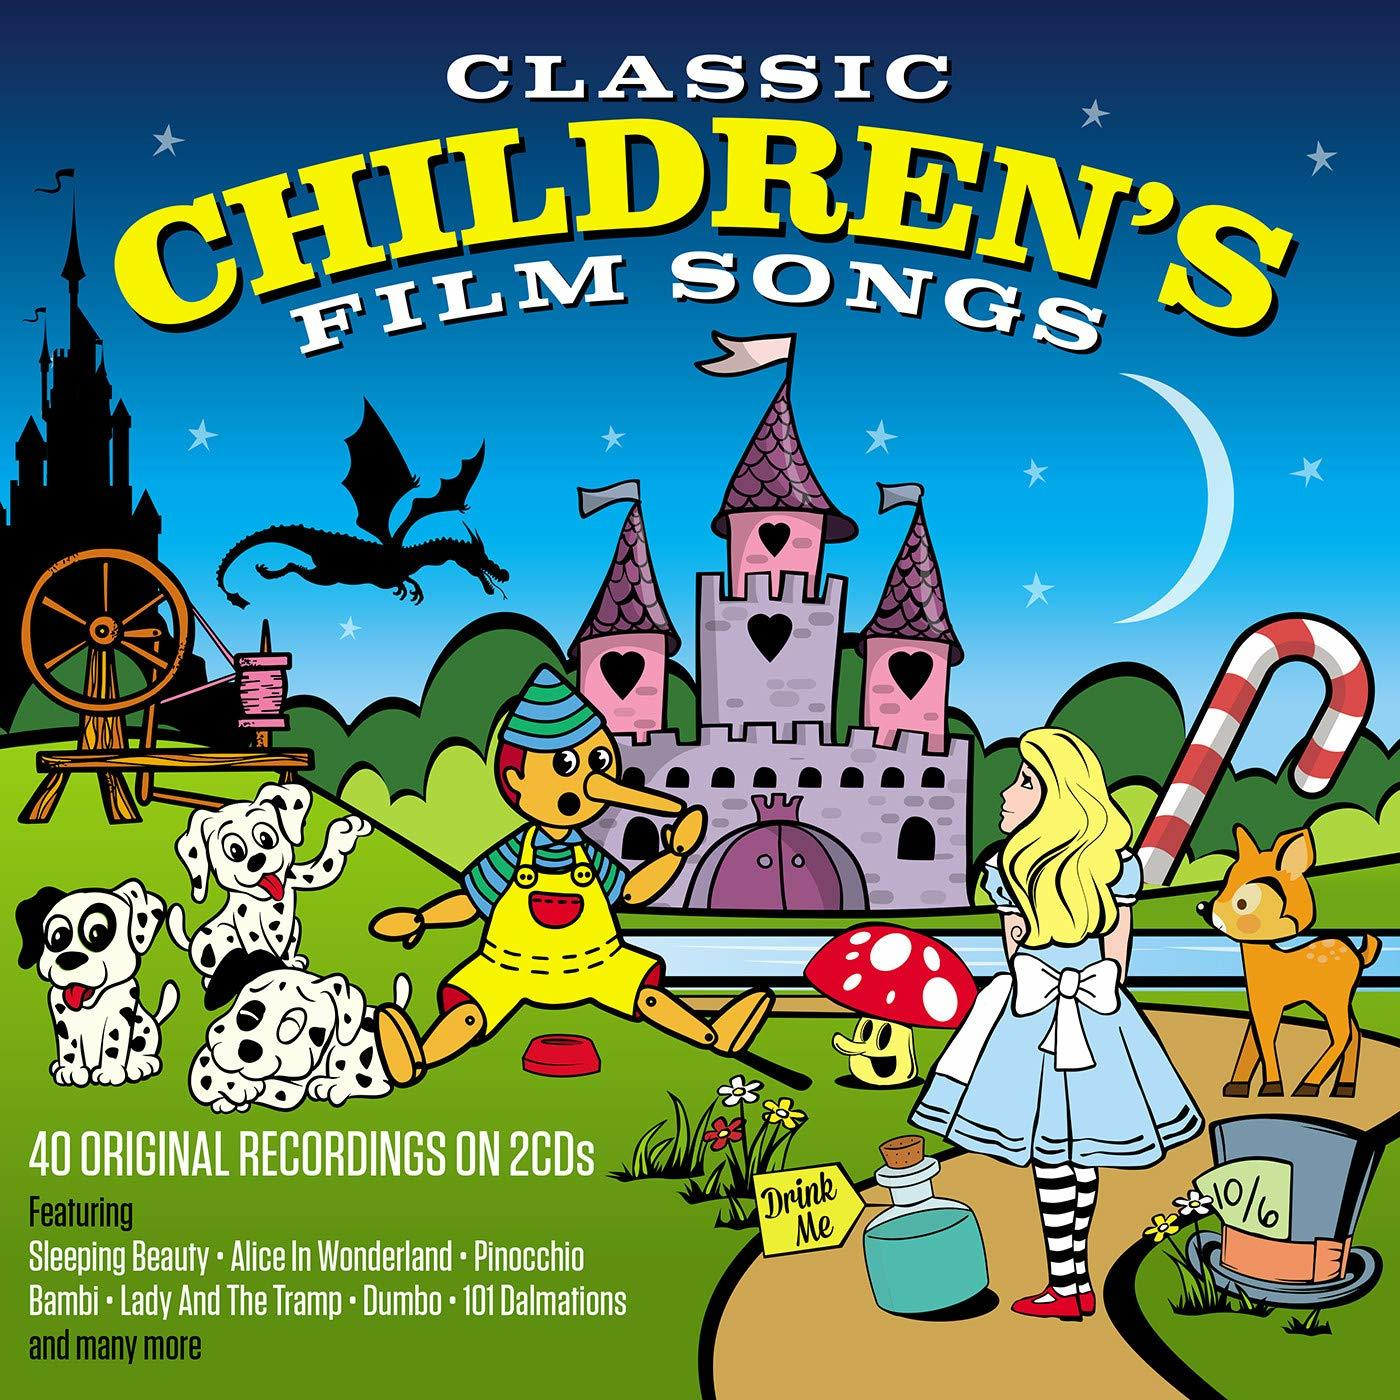 VARIOUS ARTISTS: Classic Children'S Film Songs